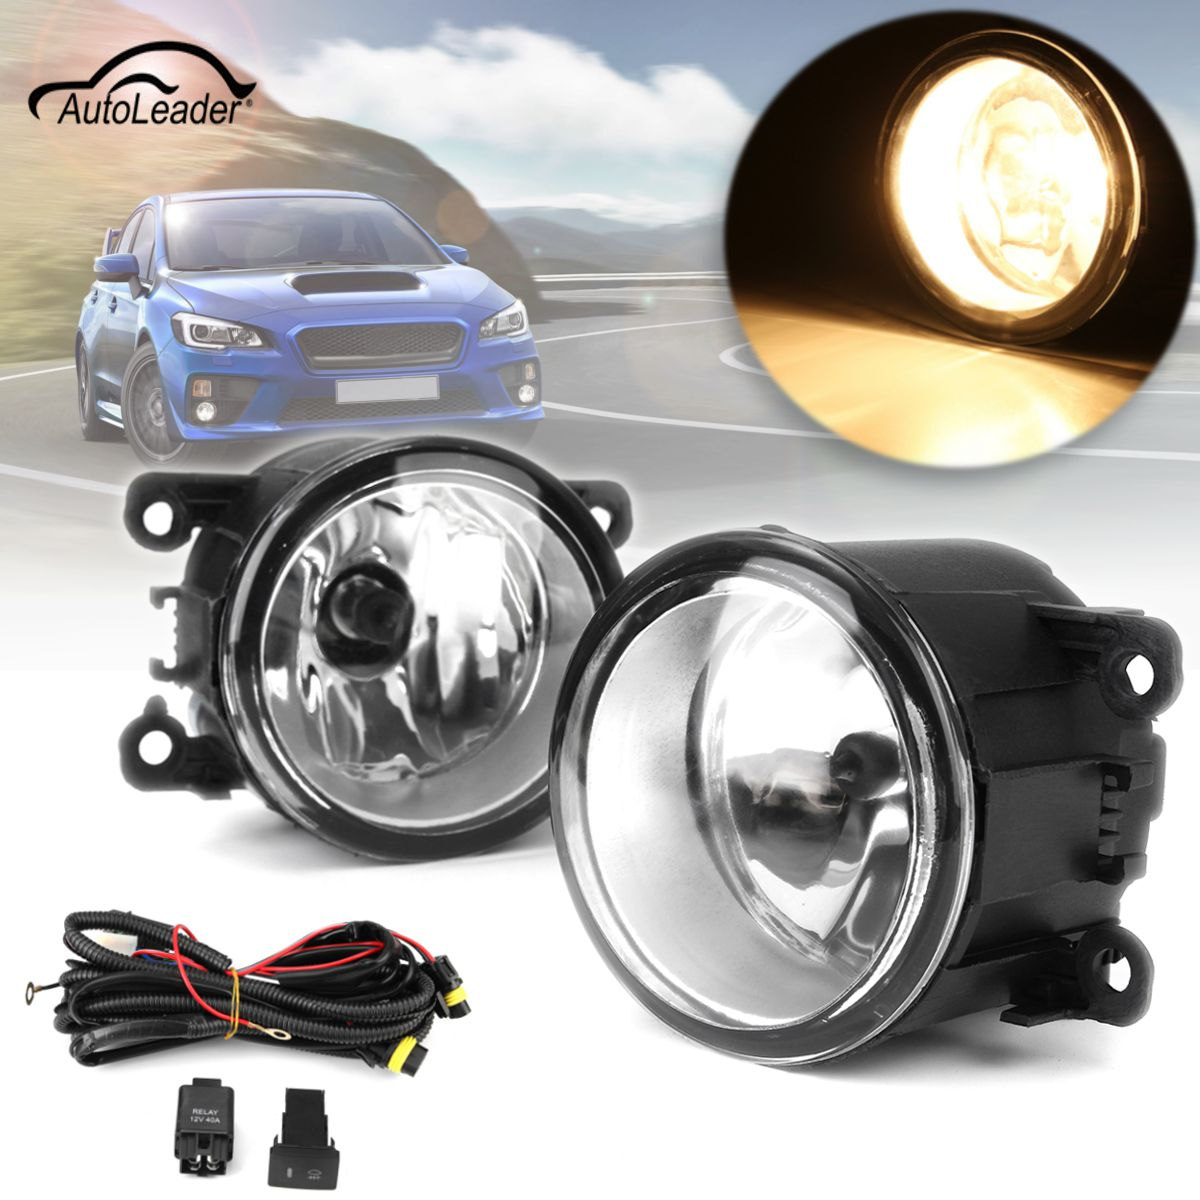 For Subaru Impreza/WRX/WRX STI/XV 1 Pair H11 Car Front Fog Light Clear Lens With Wiring Kit hgst touro s hshtosea10001bcb 1tb red